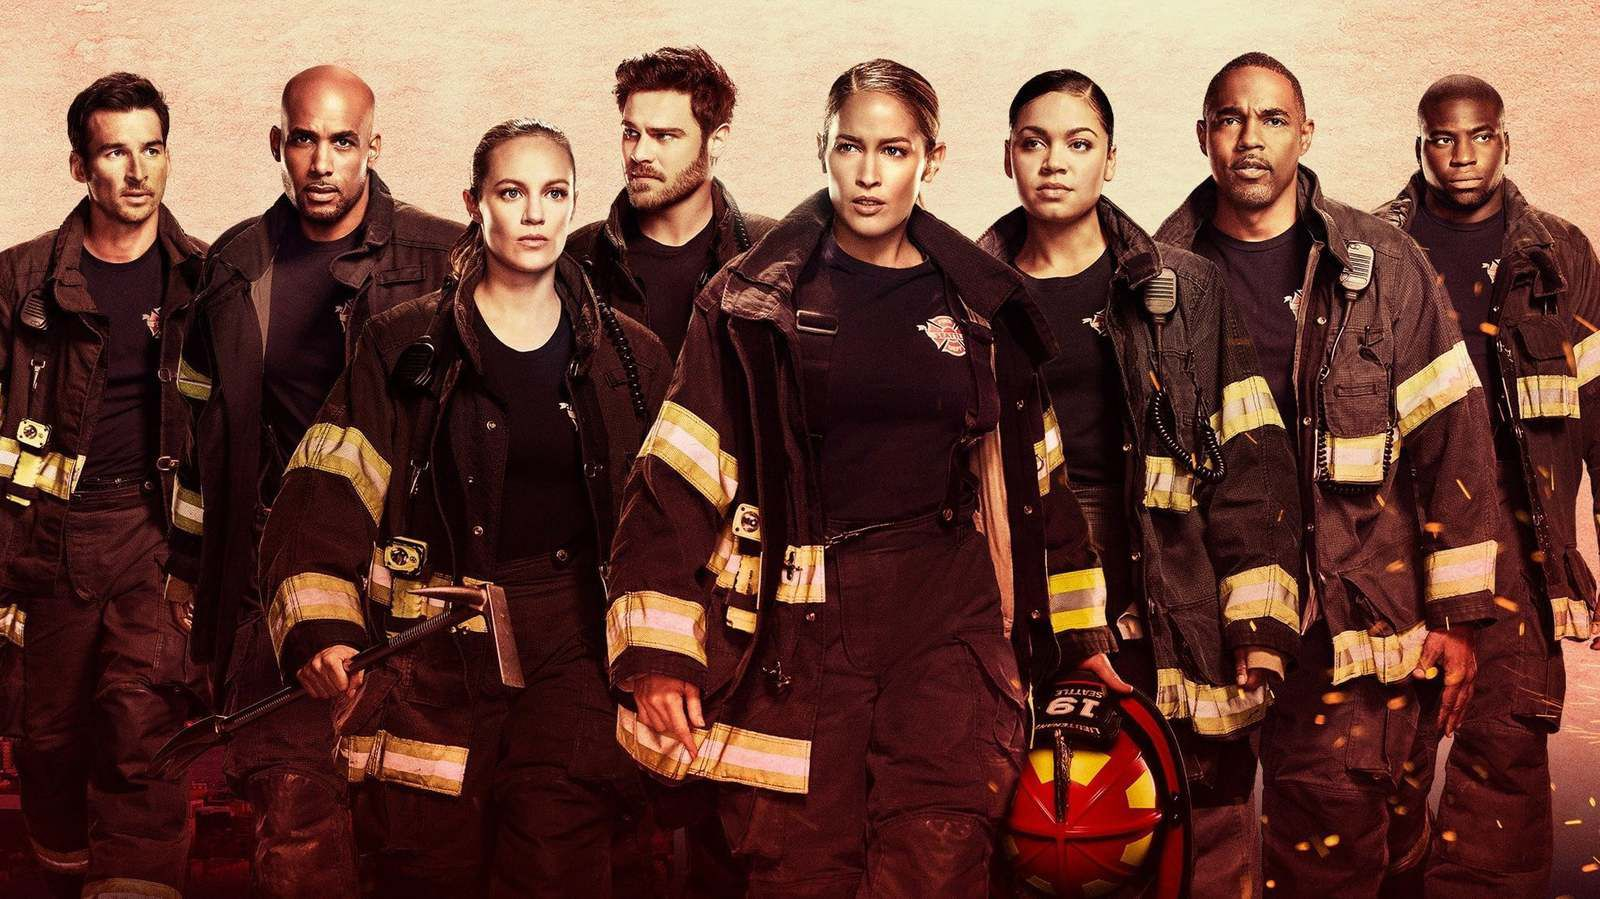 Station 19 Season 4: Renewed? Everything The Fans Should Know